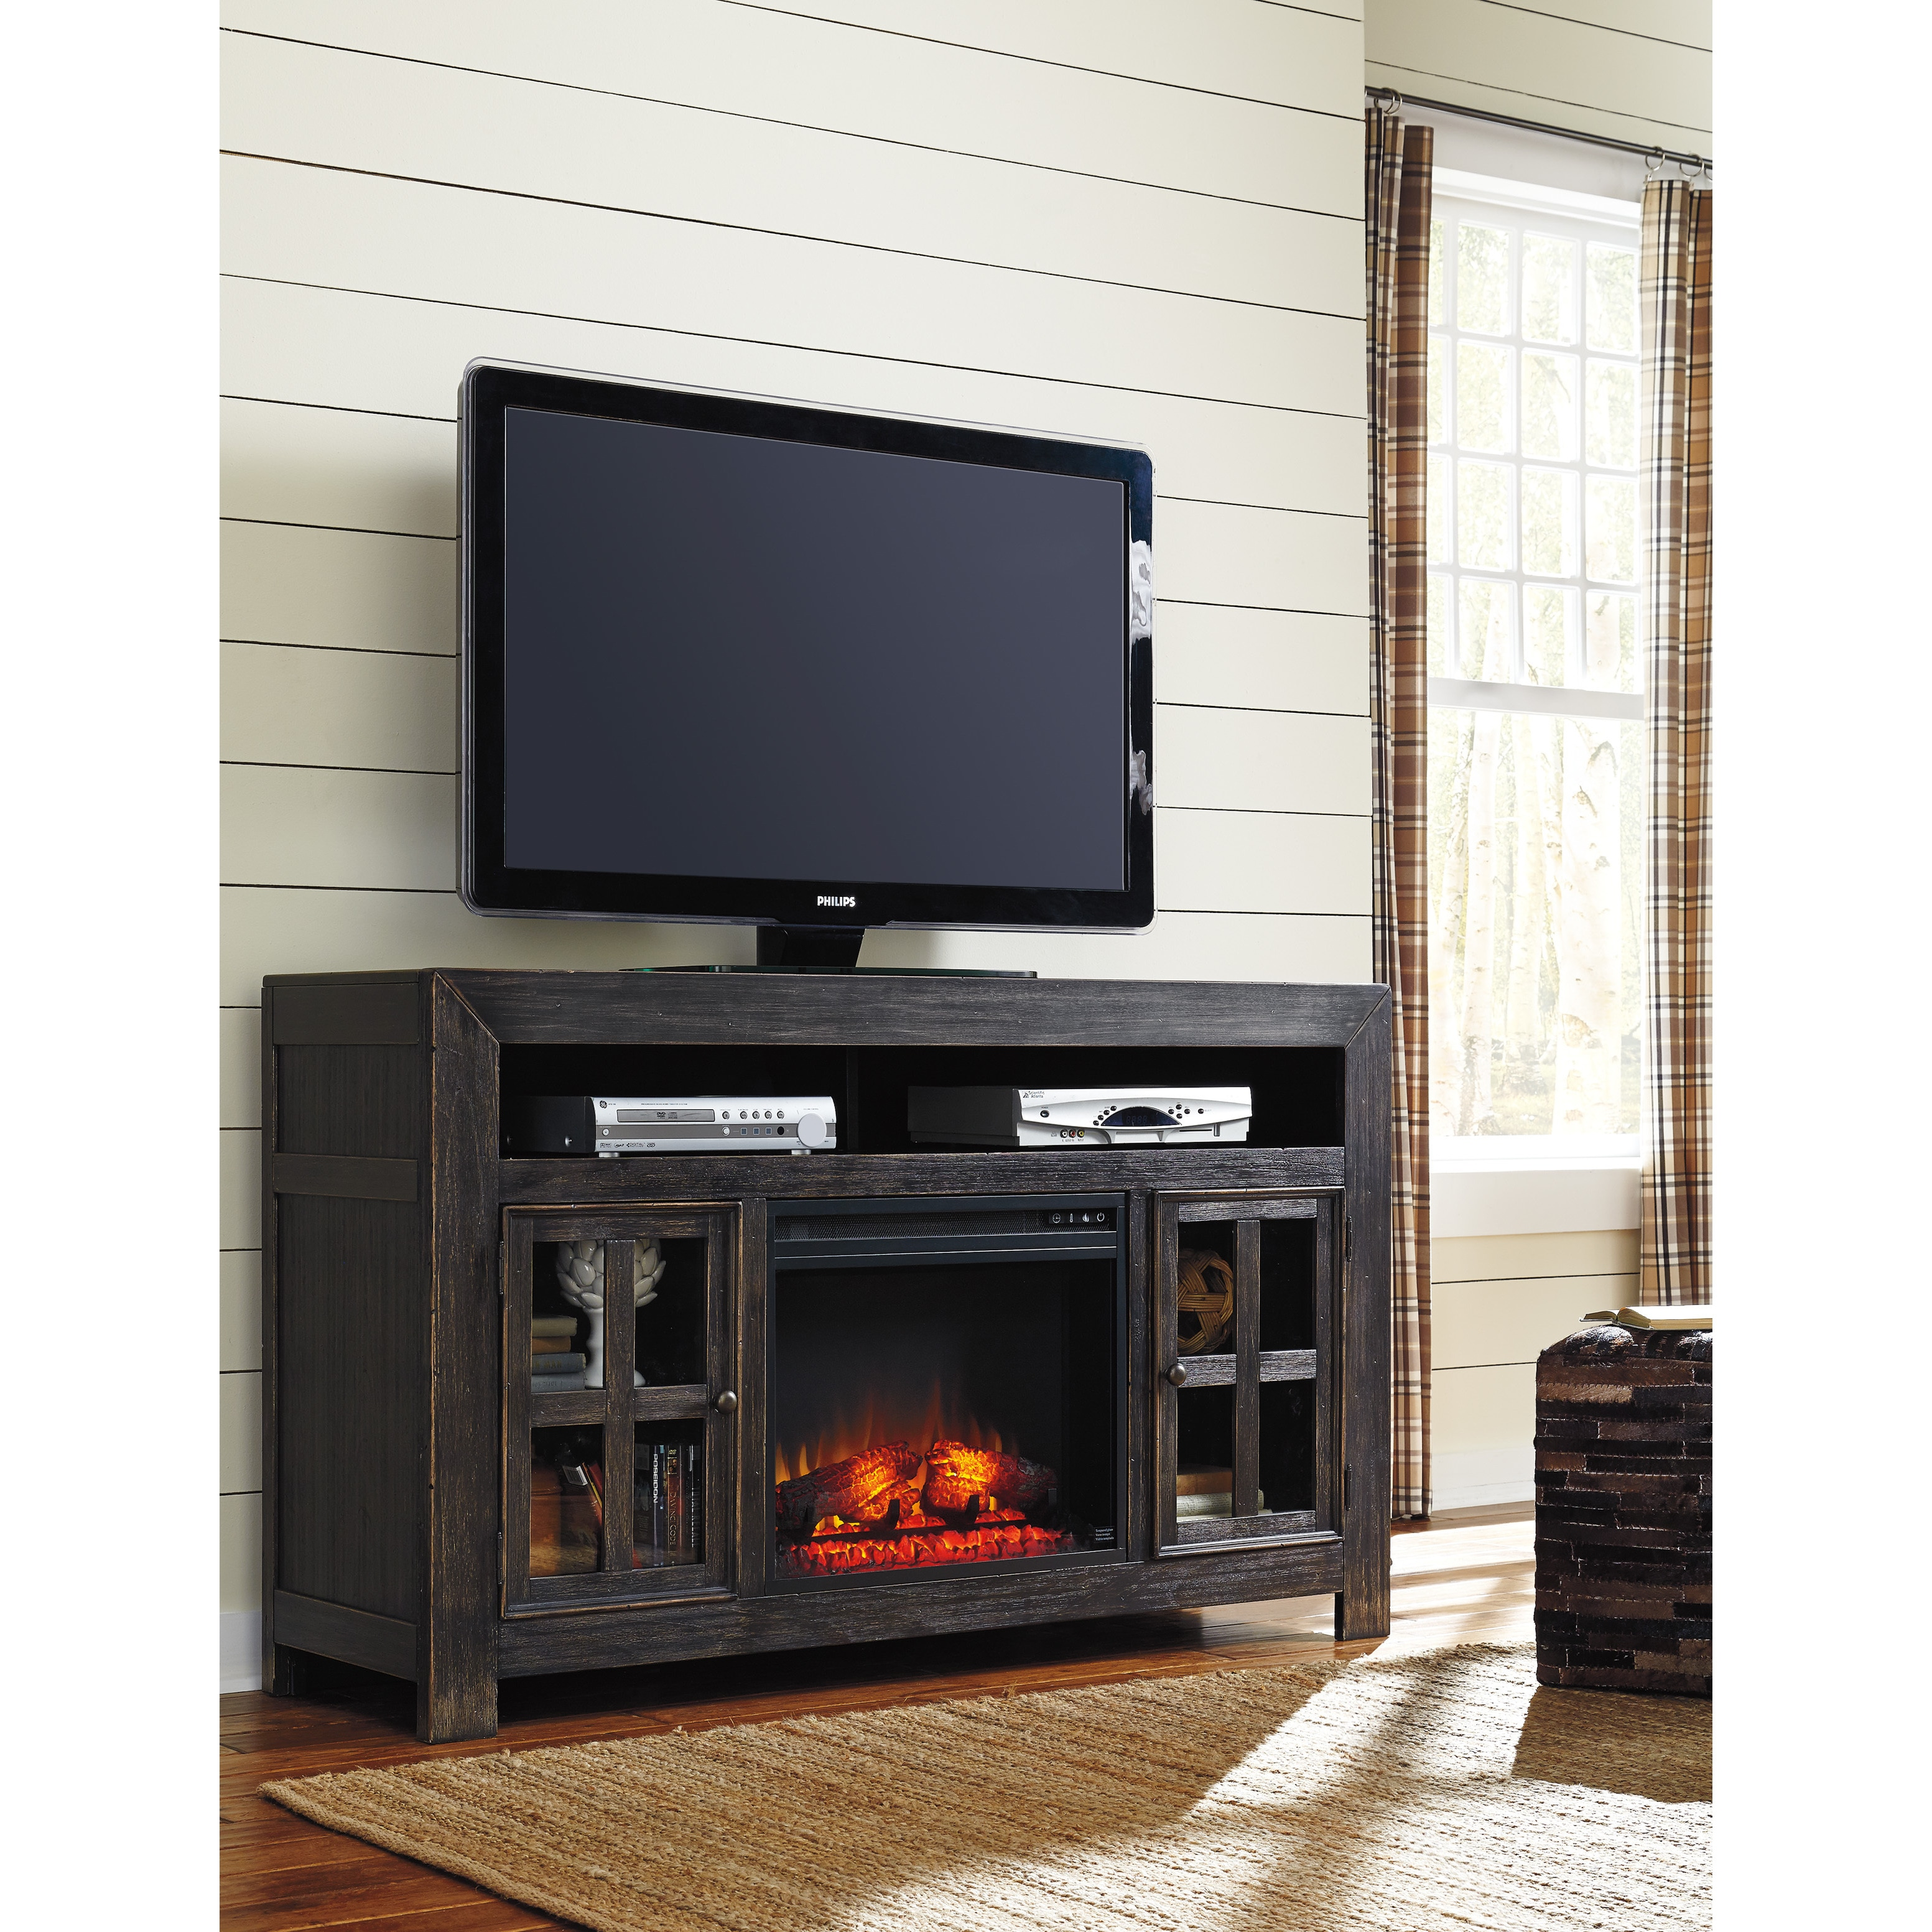 flame fireplace black electric dsw stands white home in real center stand depot tv fireplaces with distressed n b cooling entertainment the heating venting